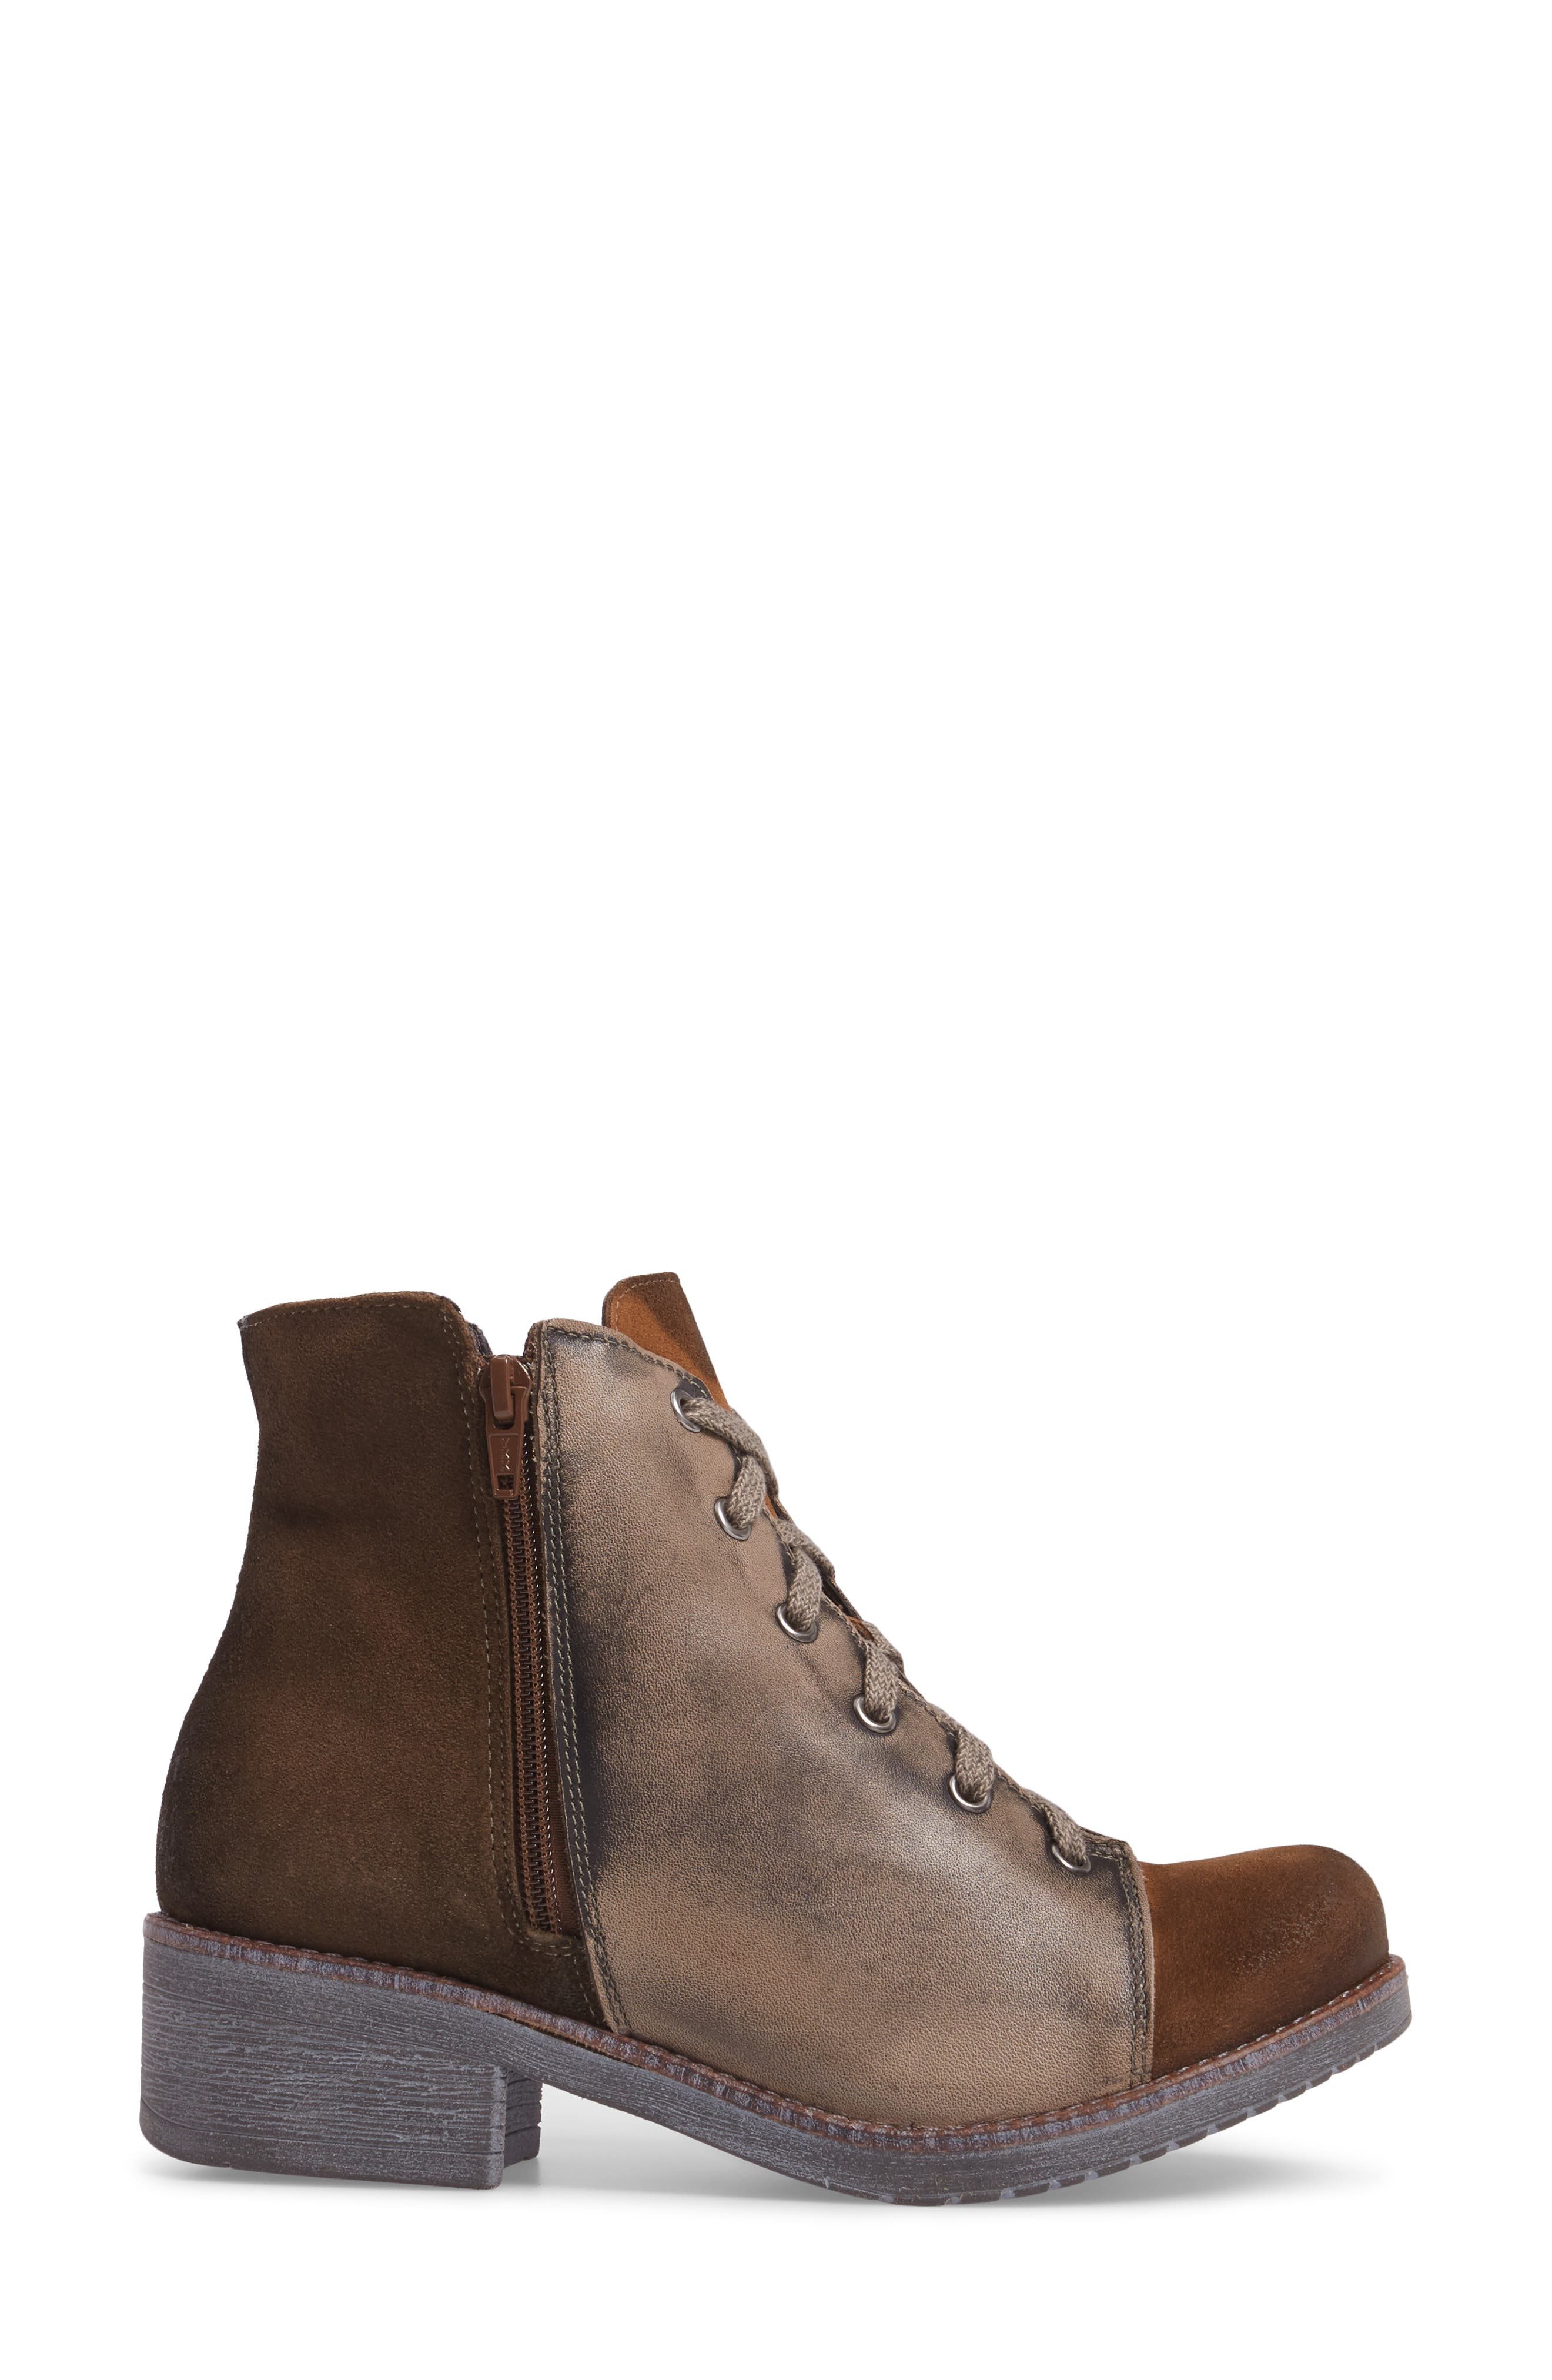 Groovy Lace Up Bootie,                             Alternate thumbnail 6, color,